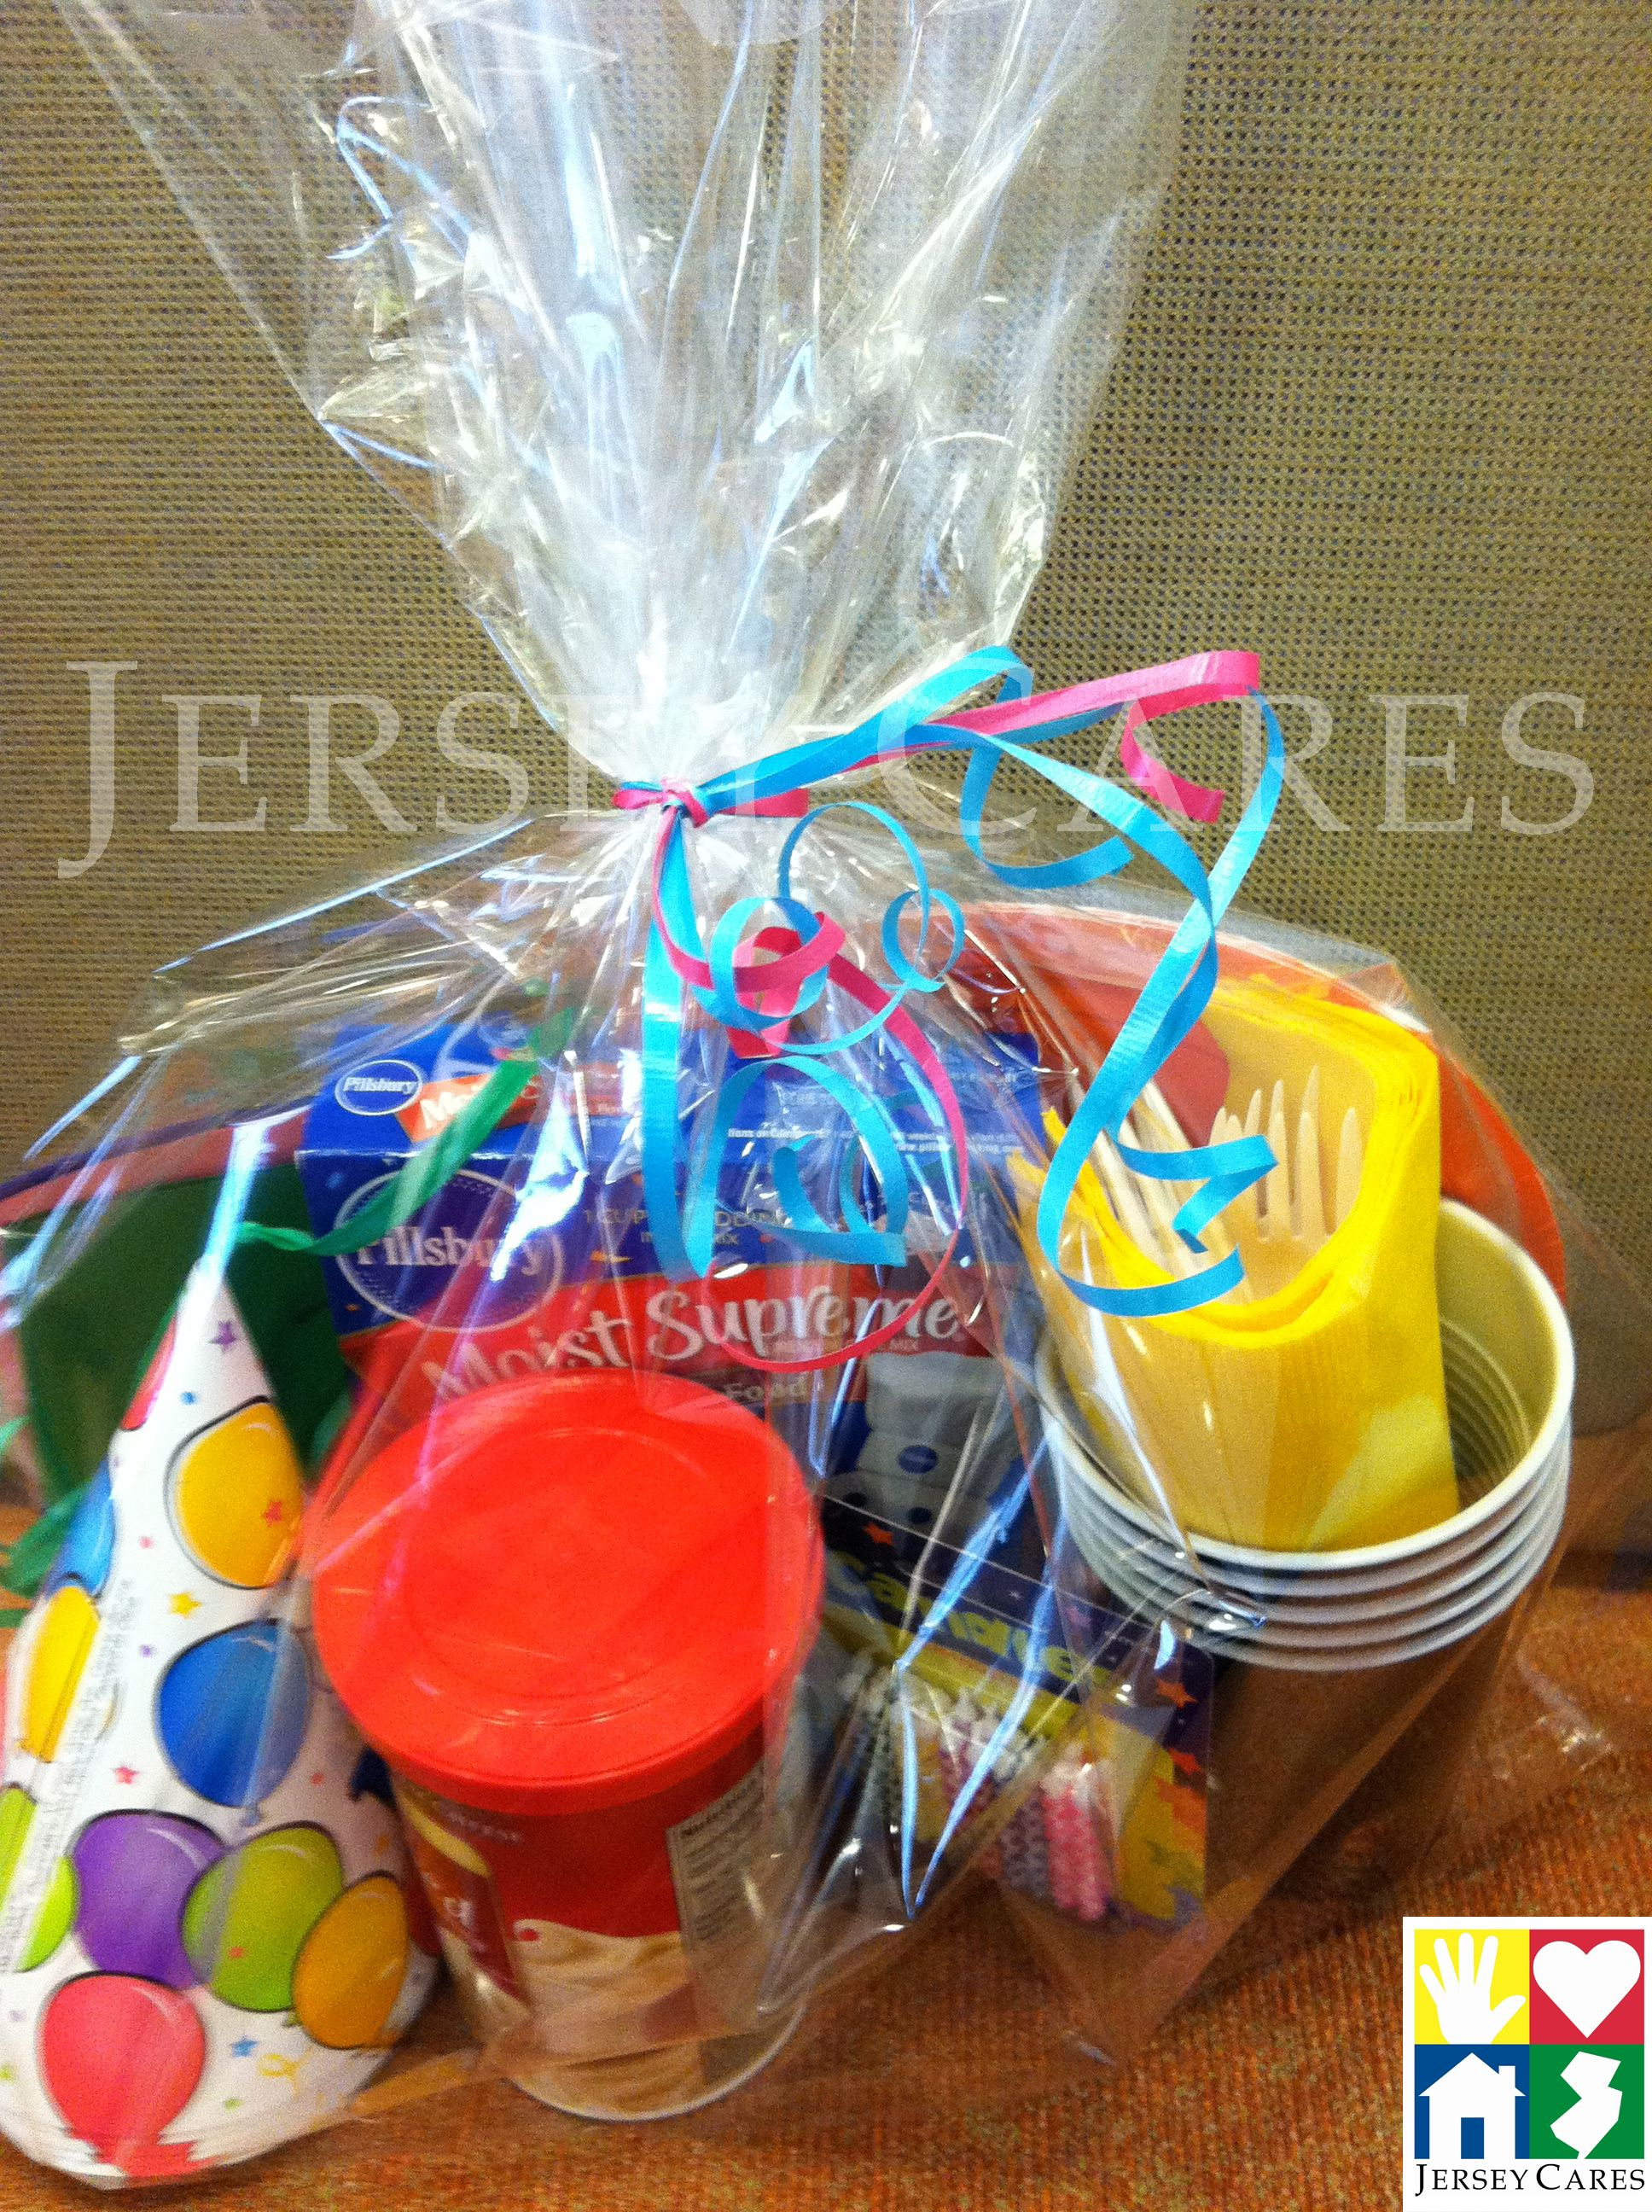 Create Birthday in a Bag kits for a local children's shelter to offset the cost of birthday parties for their kids. LOVE THIS IDEA!